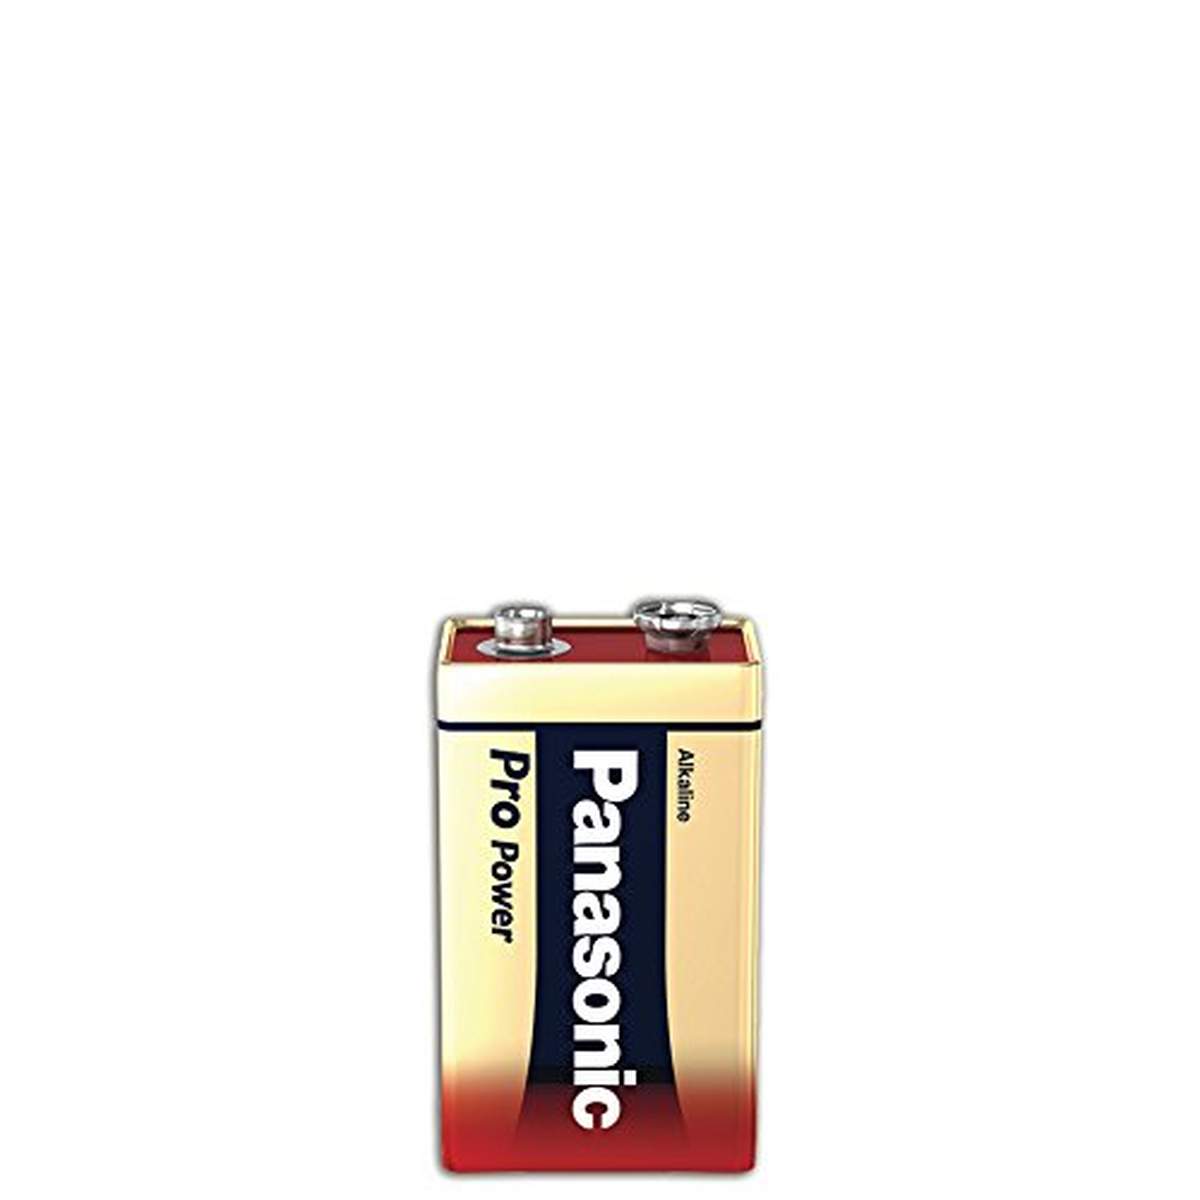 Panasonic Batterie Alkali Pro Power 6LR61PPG, 9V